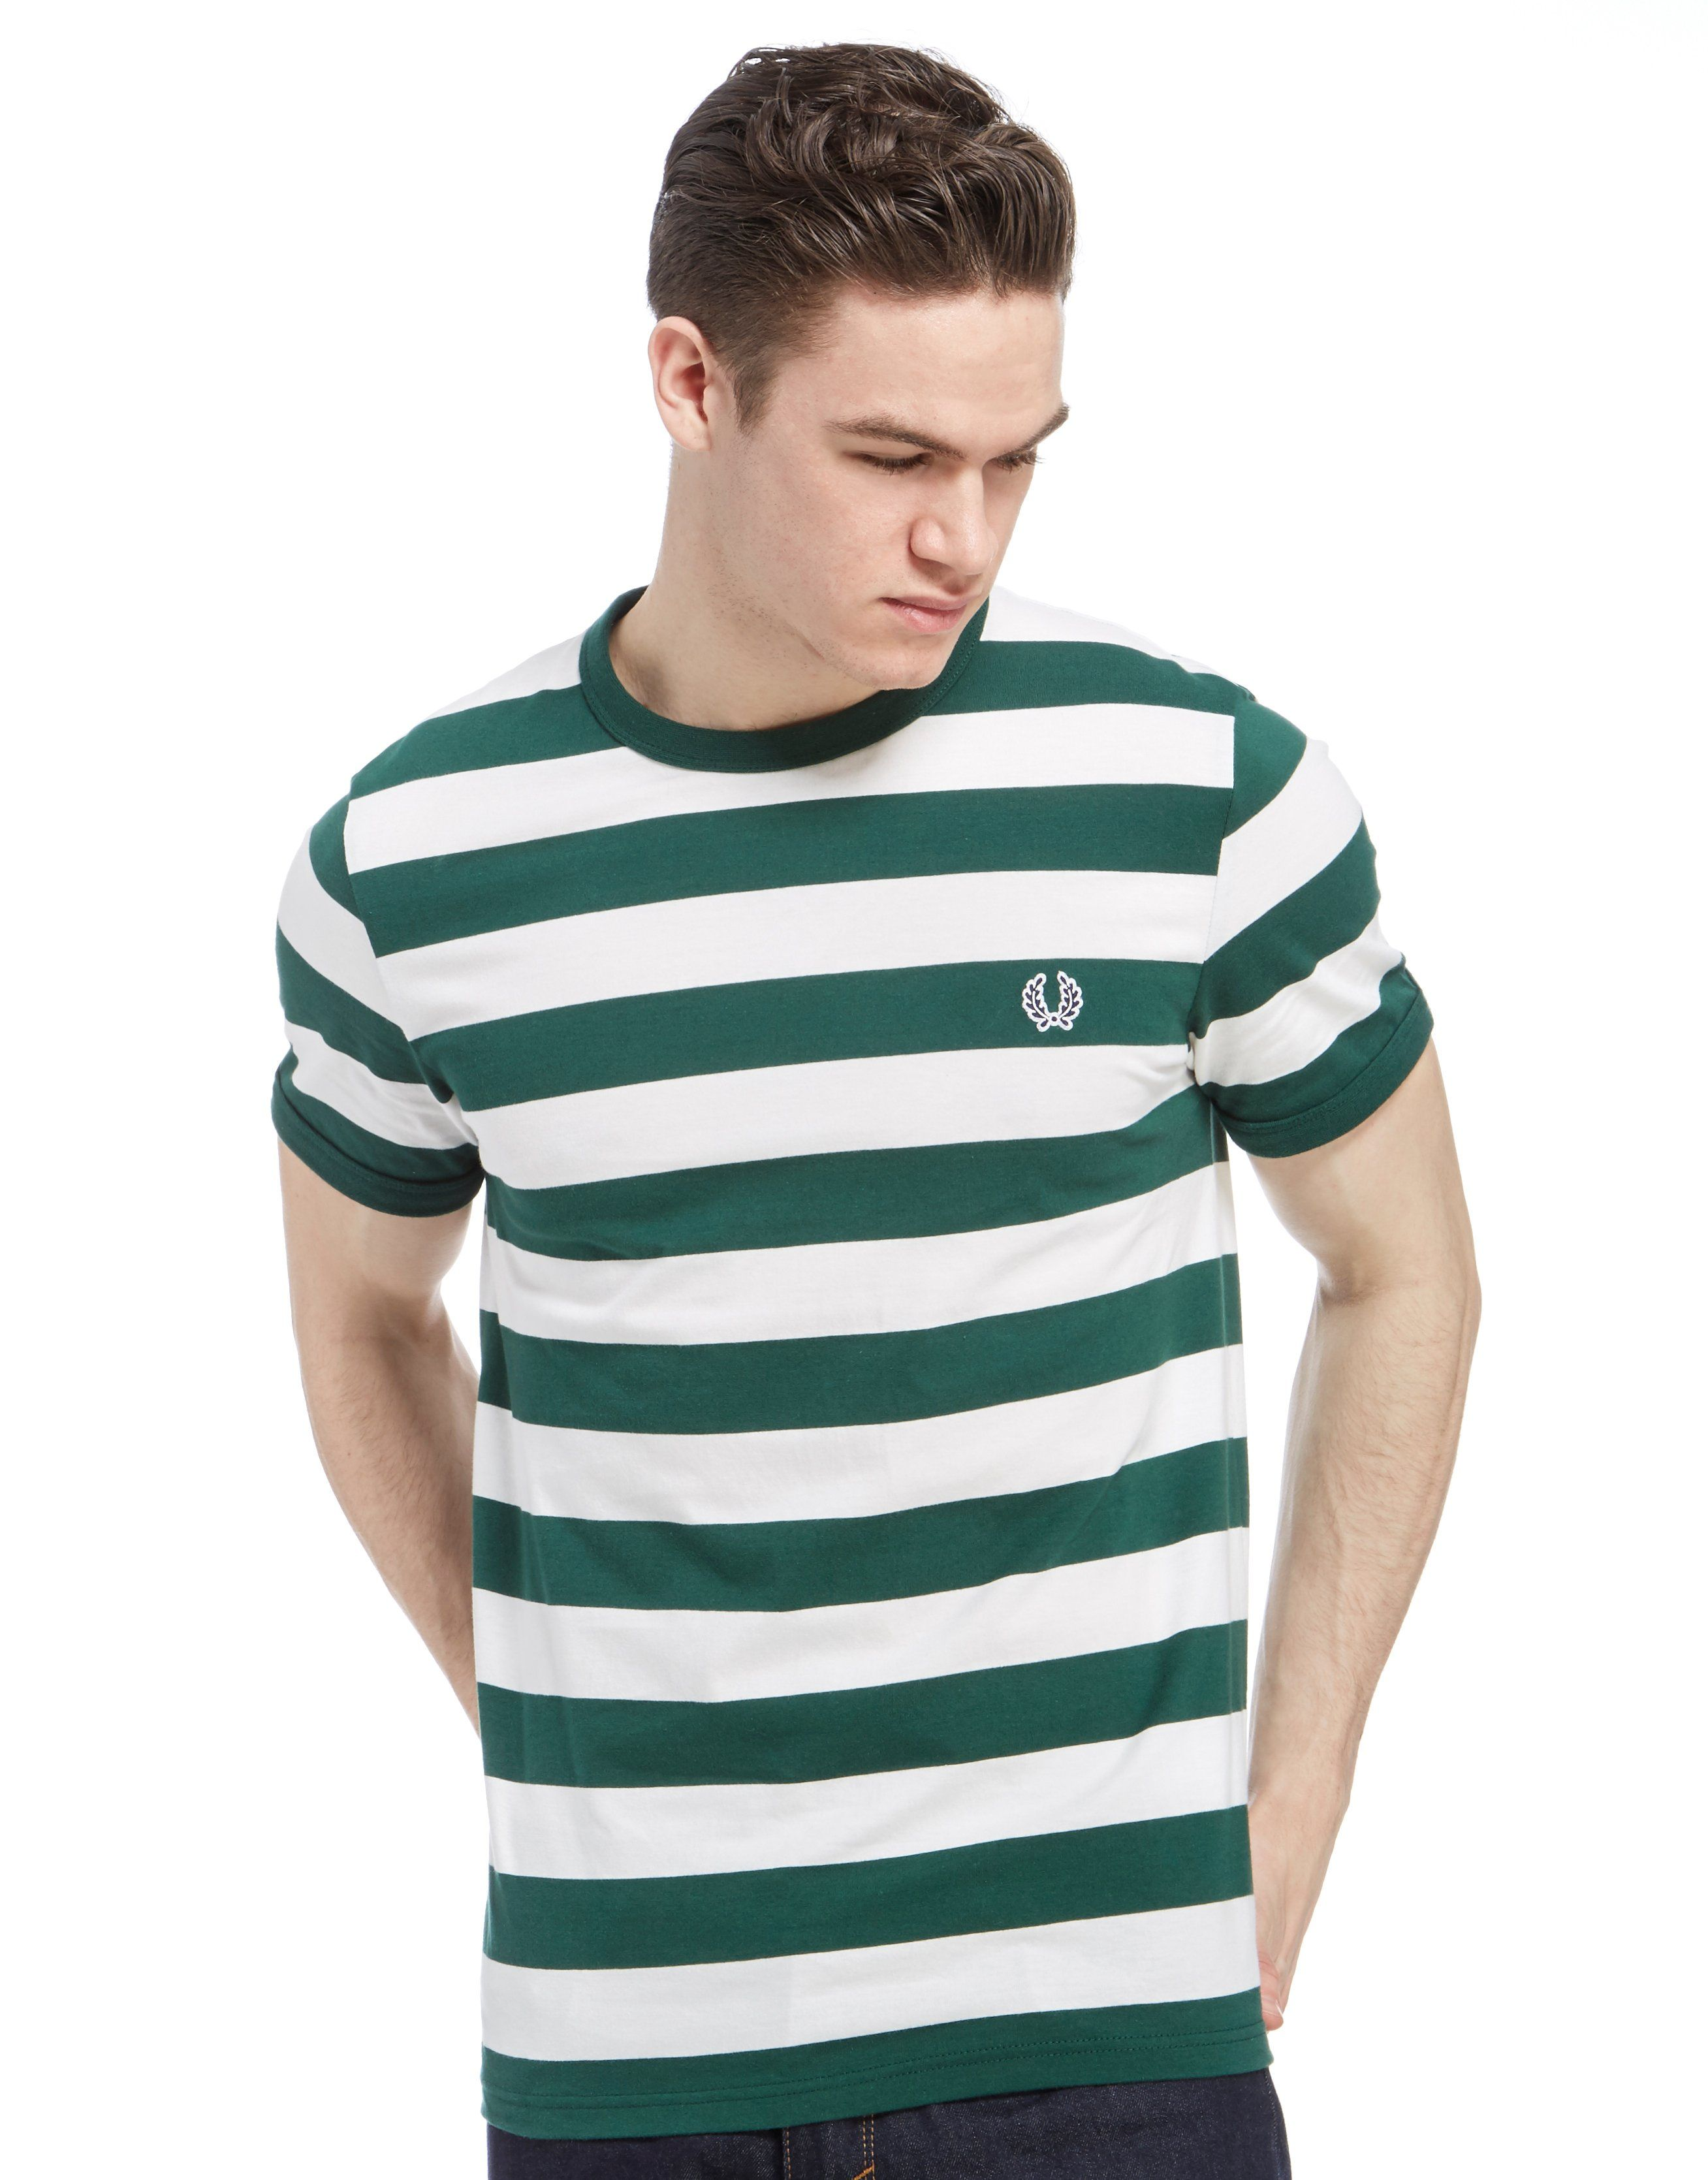 Fred Perry Striped Ringer T Shirt Jd Sports